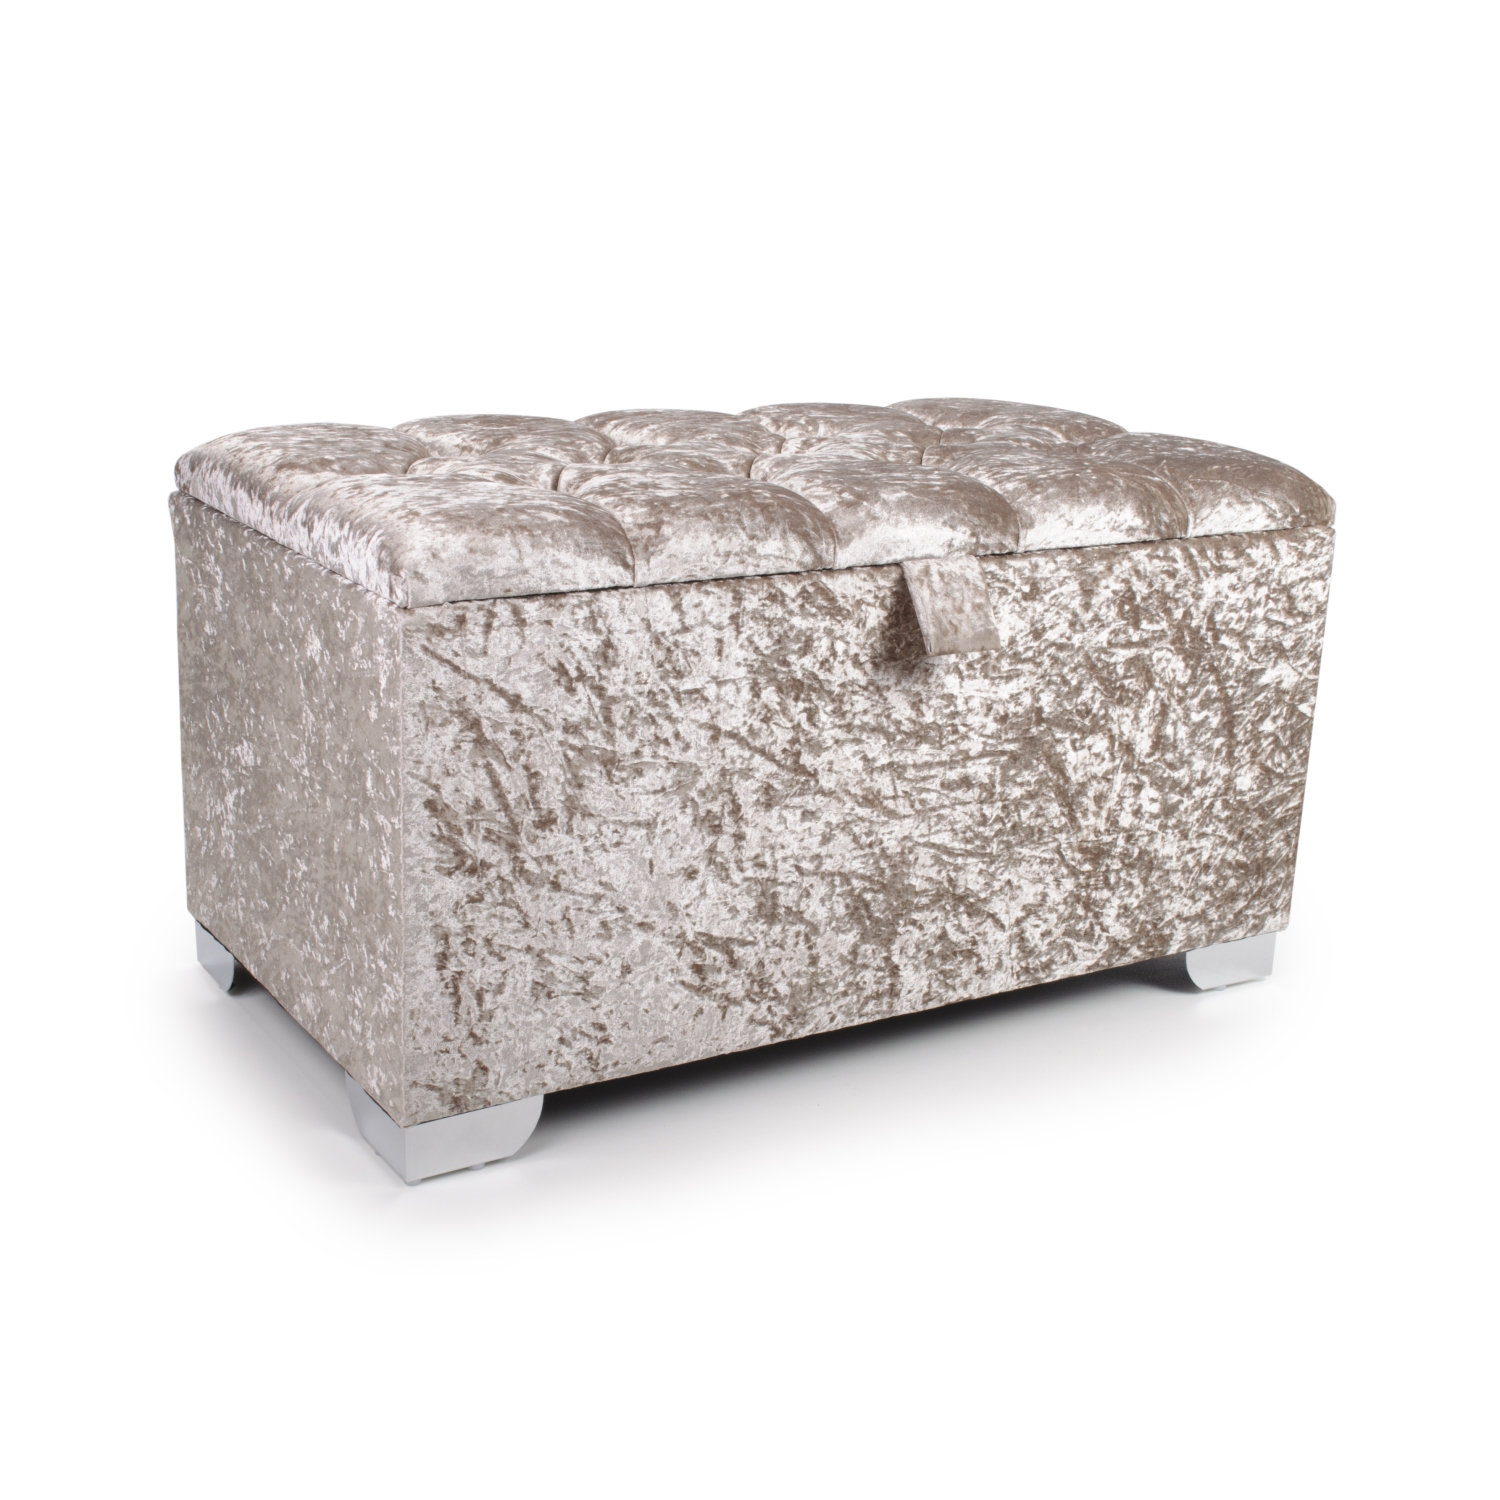 quilted mink fabric ottoman